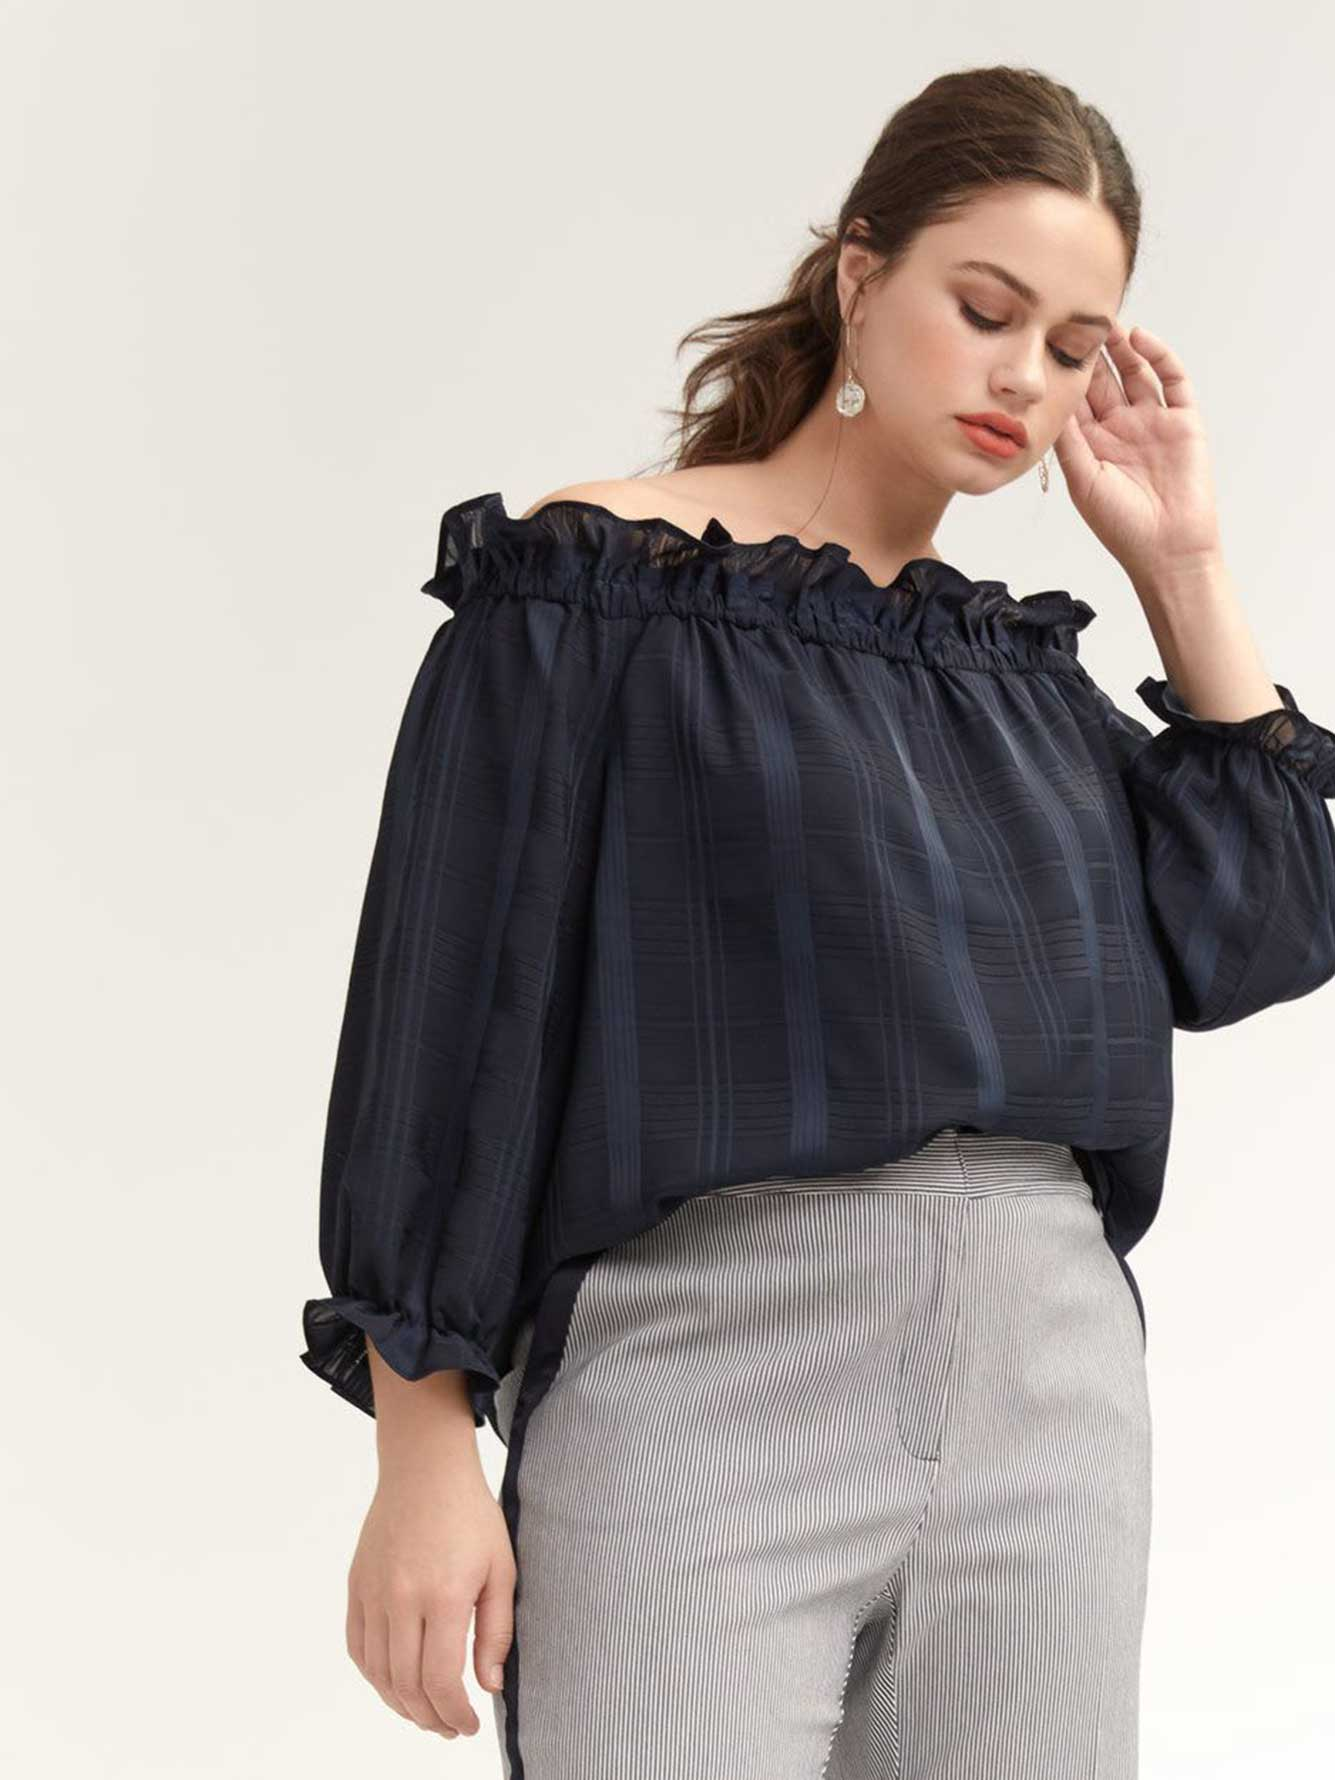 Off-the-Shoulder Isla Ruffle Top - RACHEL Rachel Roy